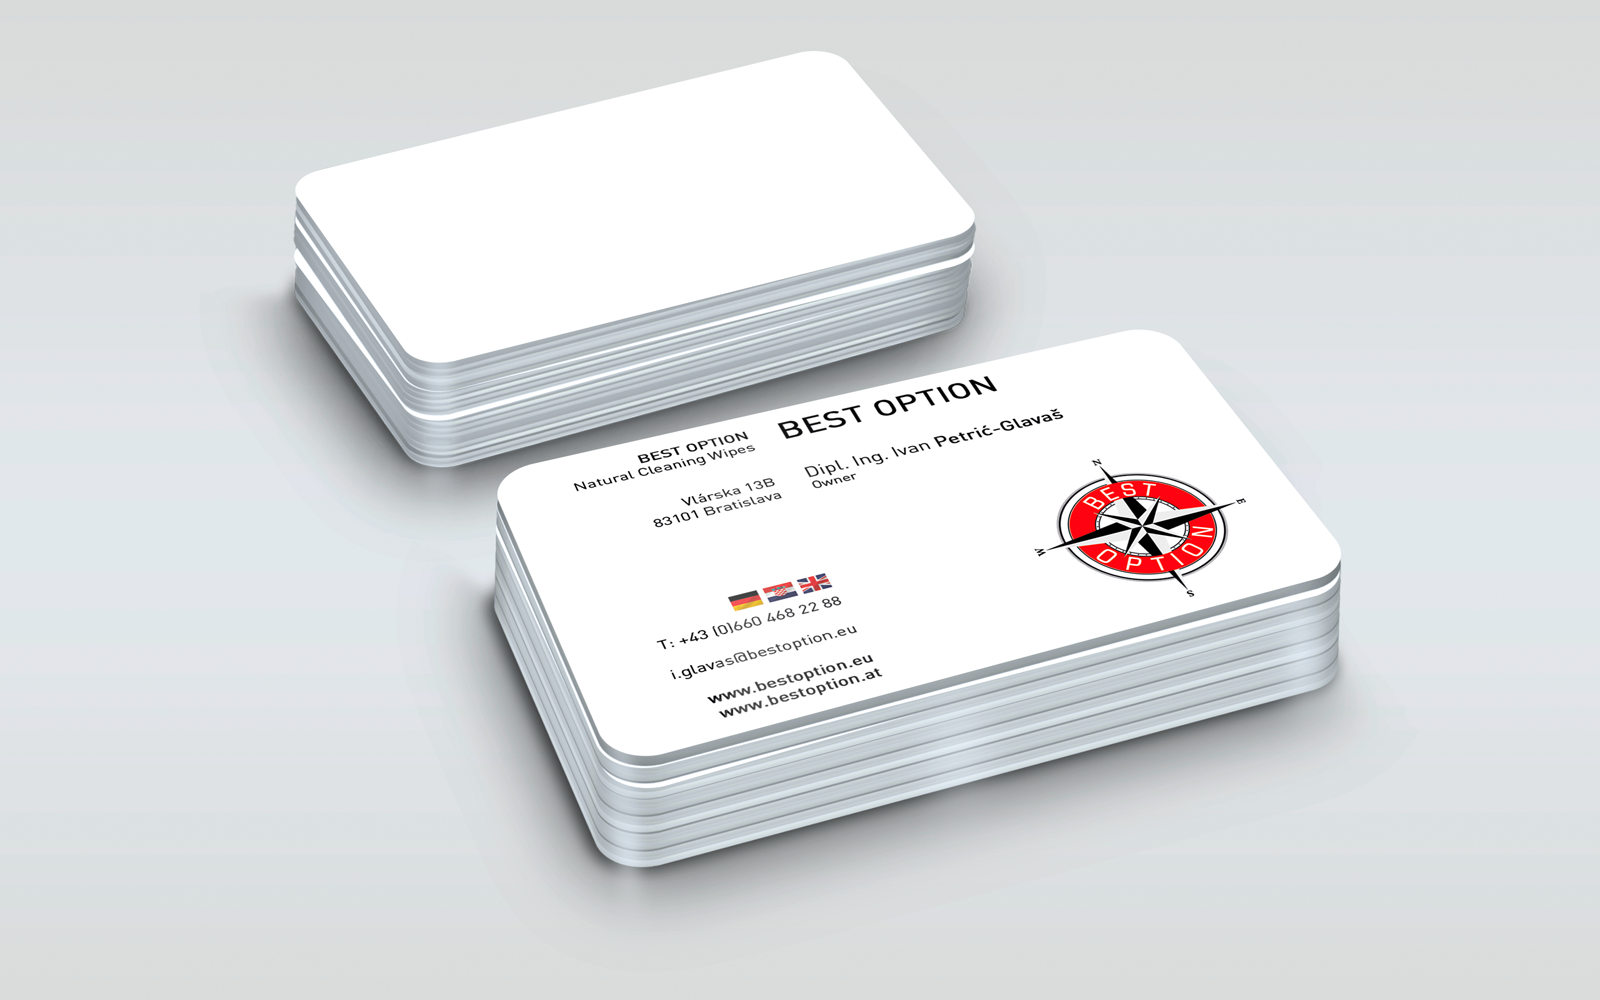 Best Option Wipes Business Card